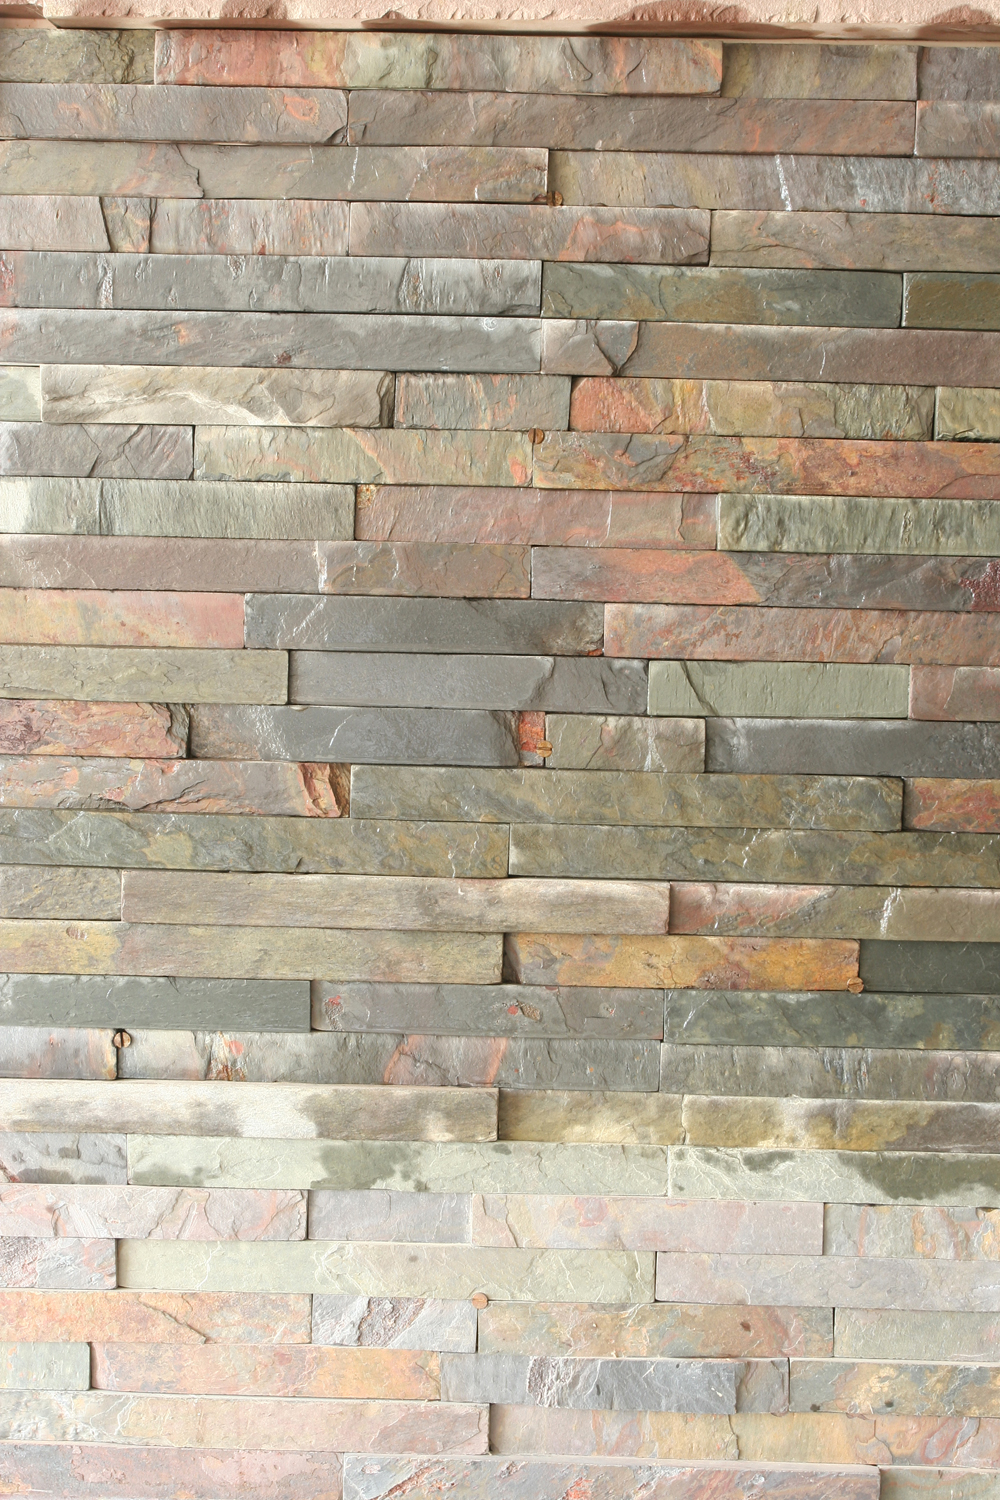 Best Stone For Steps: Stone Cladding